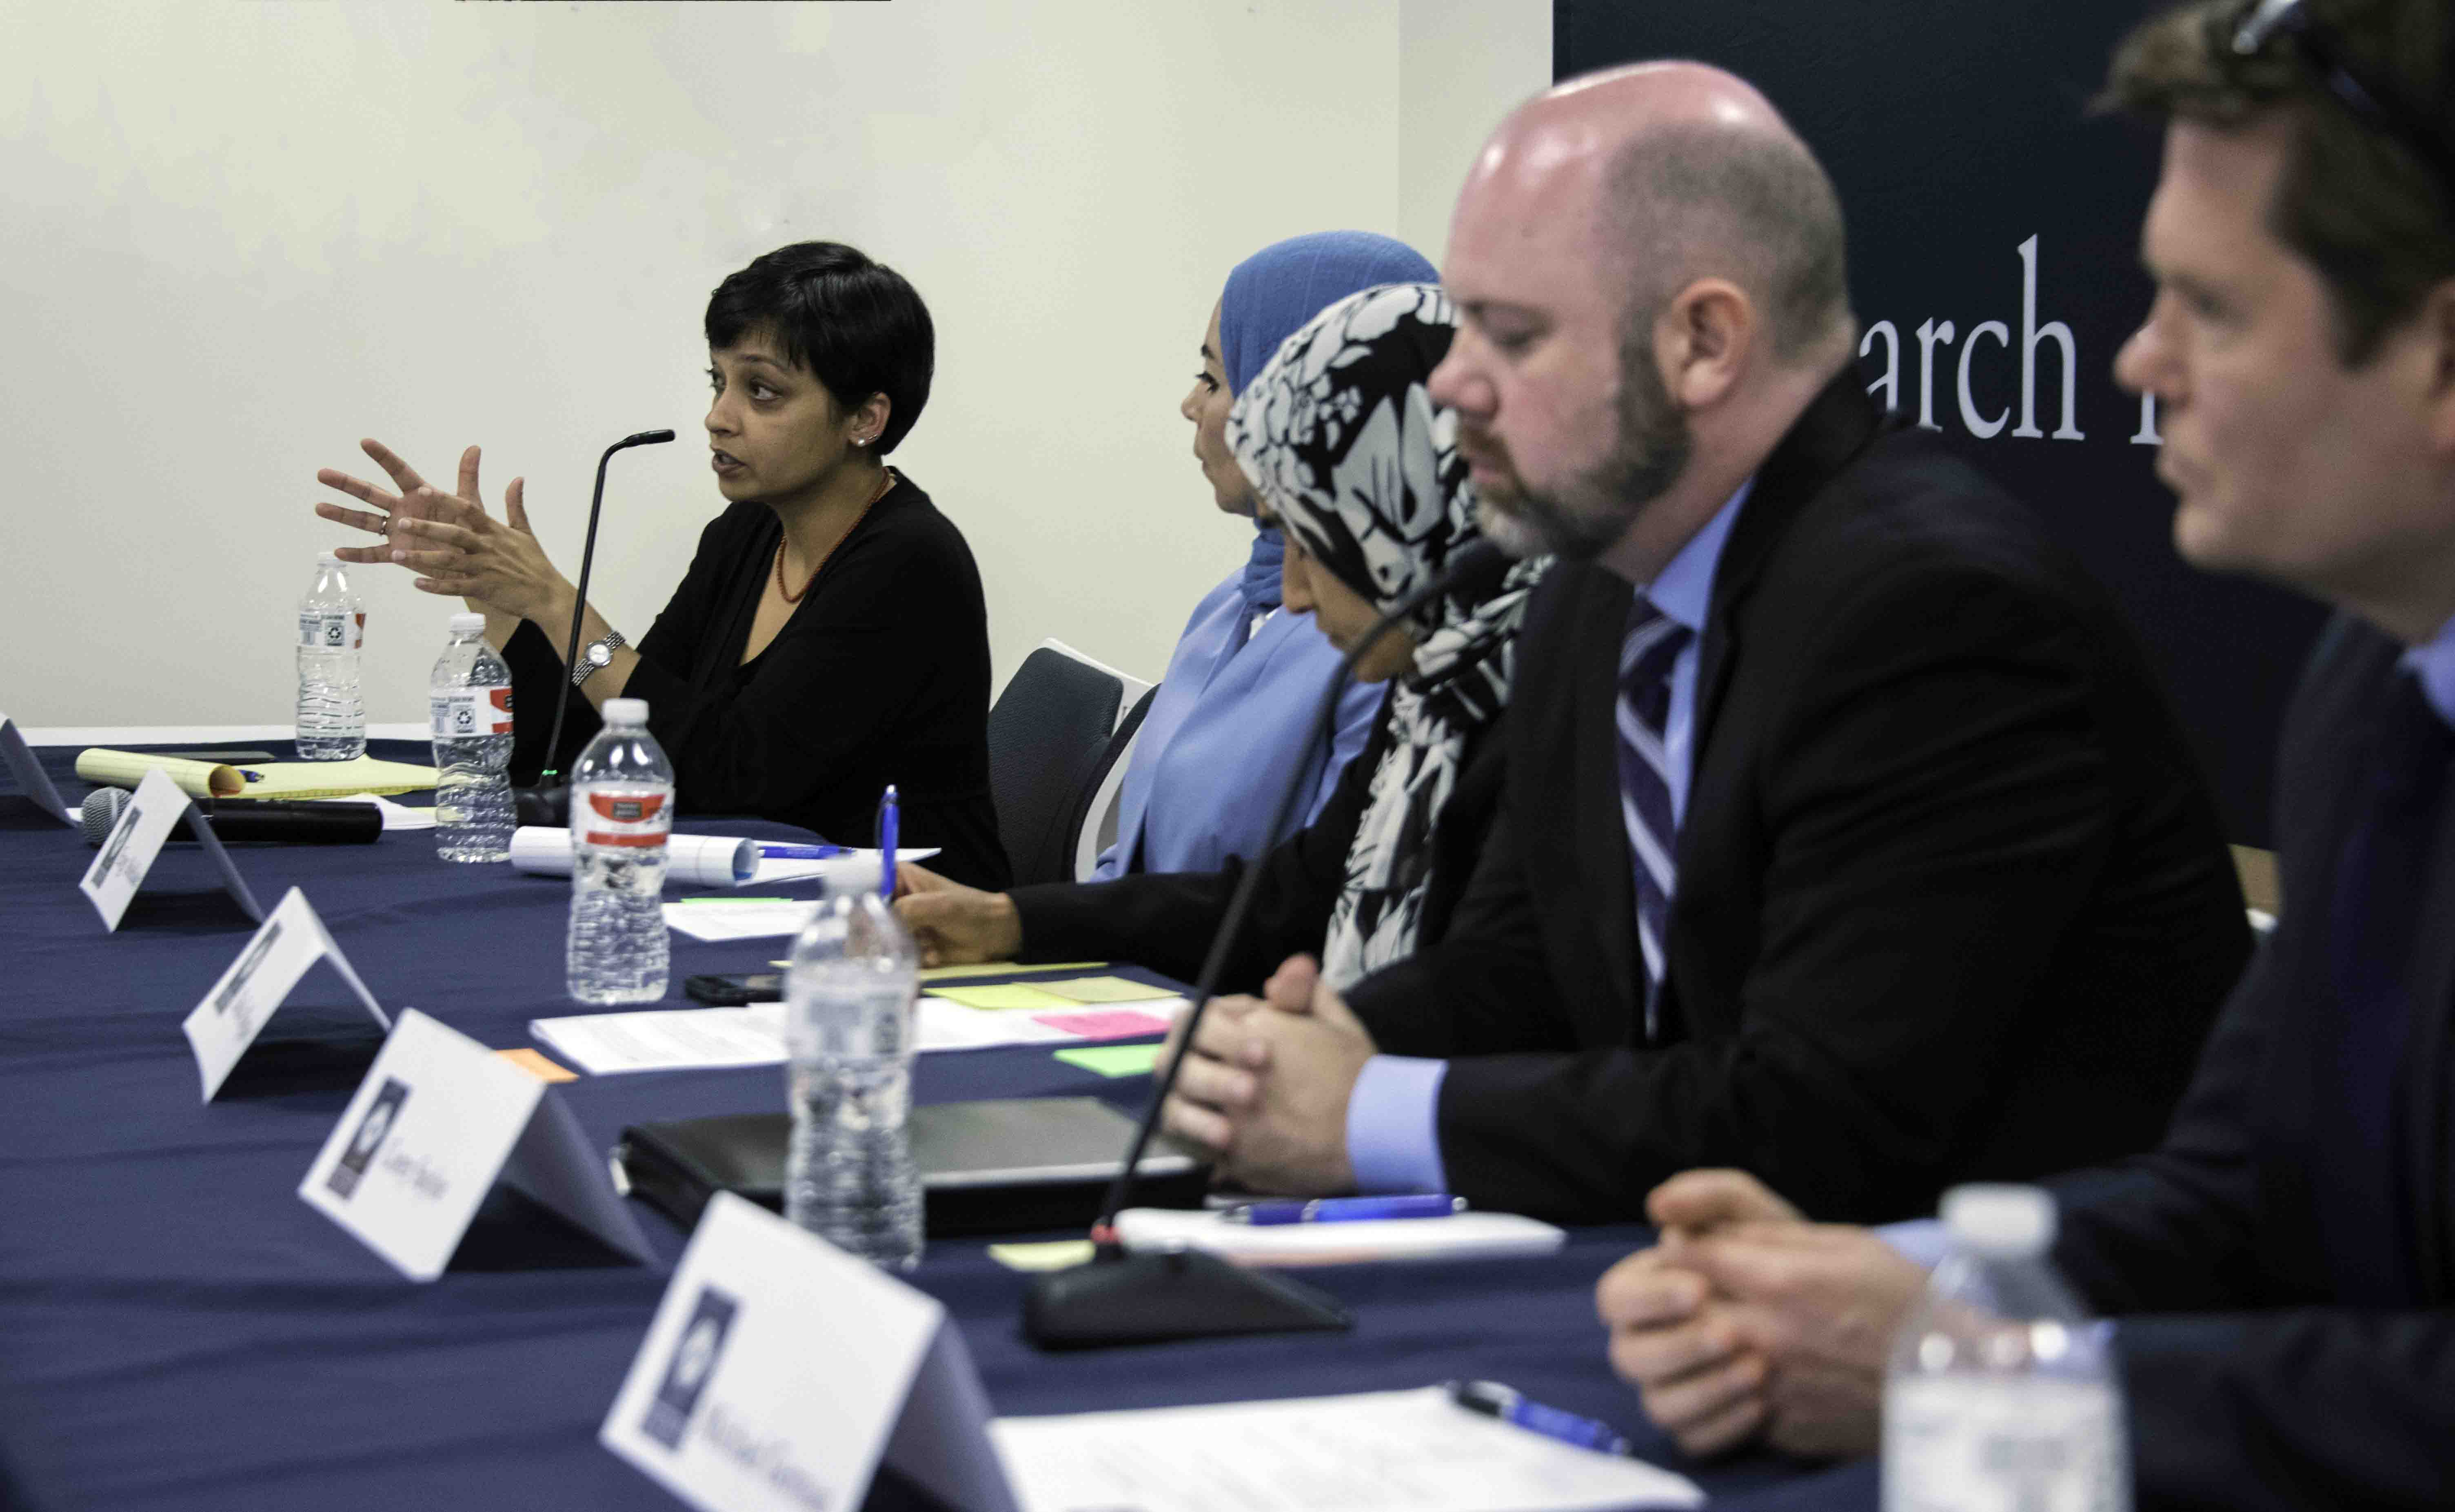 A panel including Michael German (Brennan Center), Hina Shamsi (ACLU), ISPU Scholar Engy Abdelkader (Bridge Initiative) and Corey Saylor (CAIR)